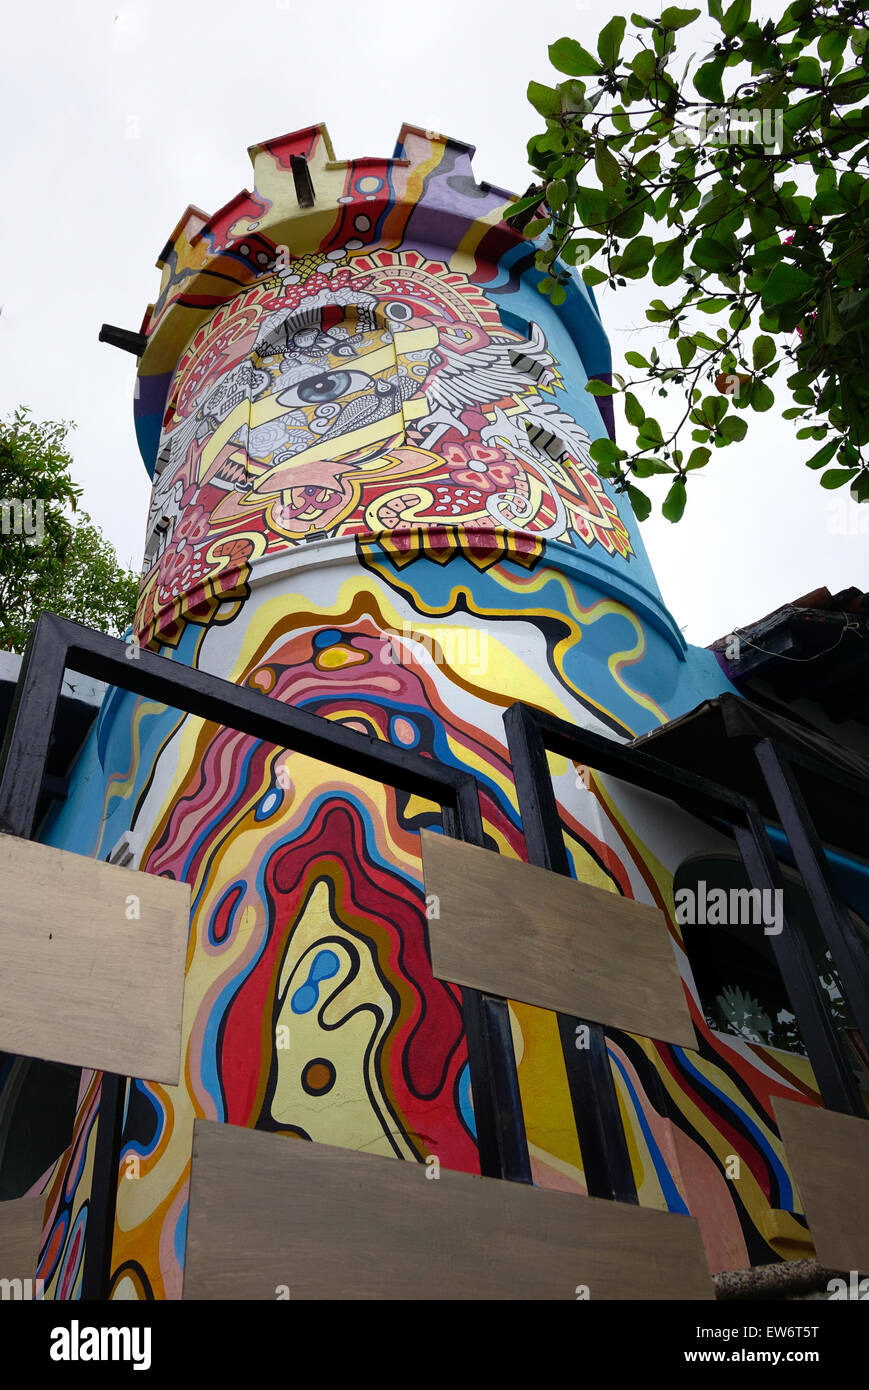 Colorful tower, entrance to Cafe des Artistes, a restaurant in Puerto Vallarta, Mexico - Stock Image